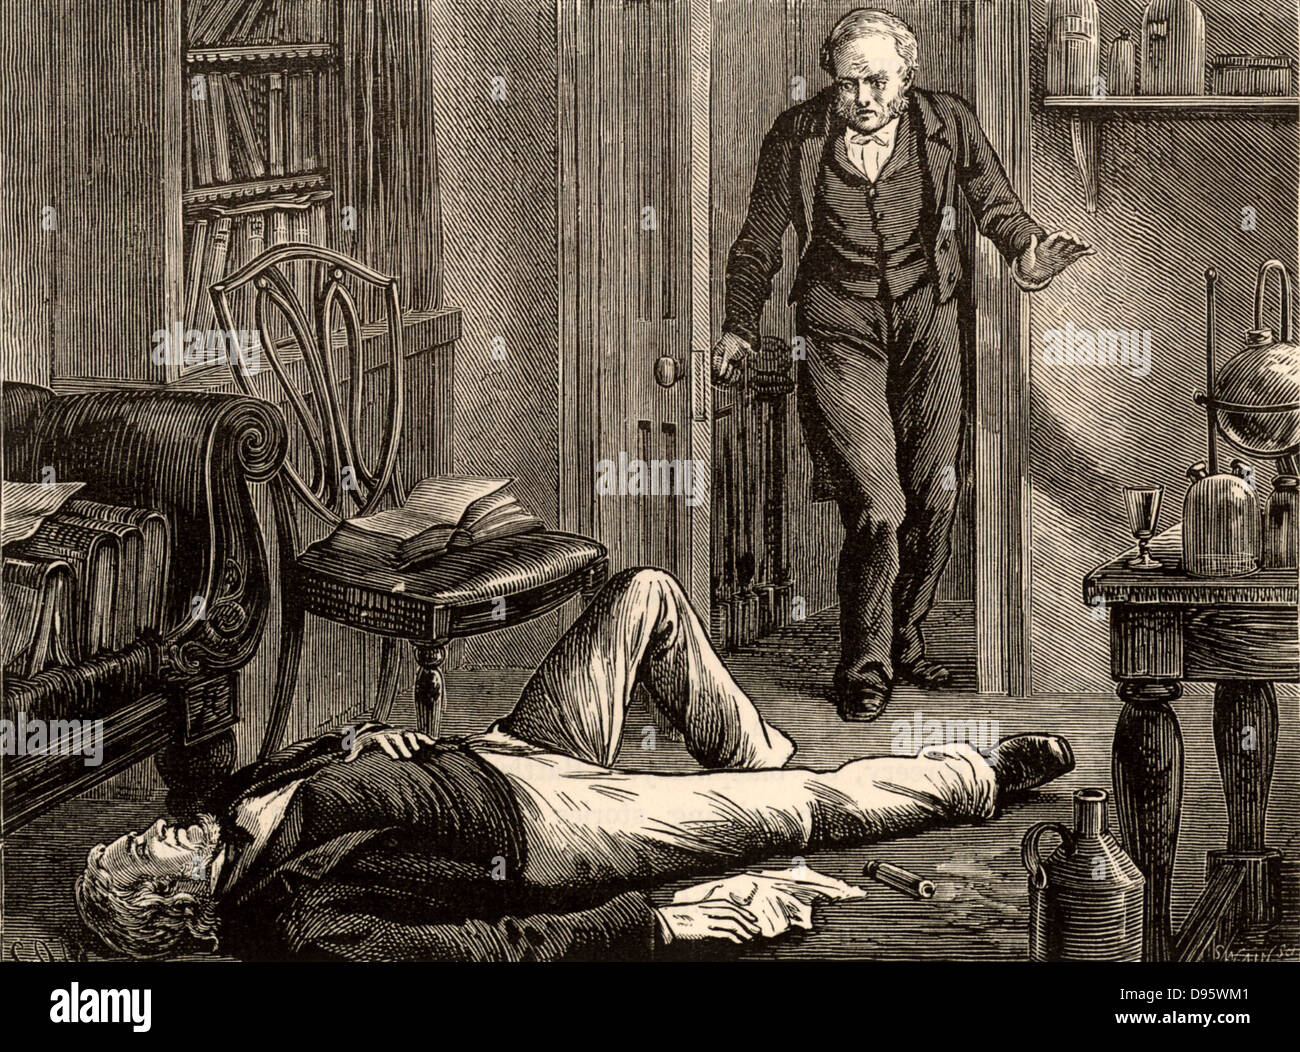 James Young Simpson, having experimented on himself with chloroform, found unconcious on the floor by his butler. - Stock Image